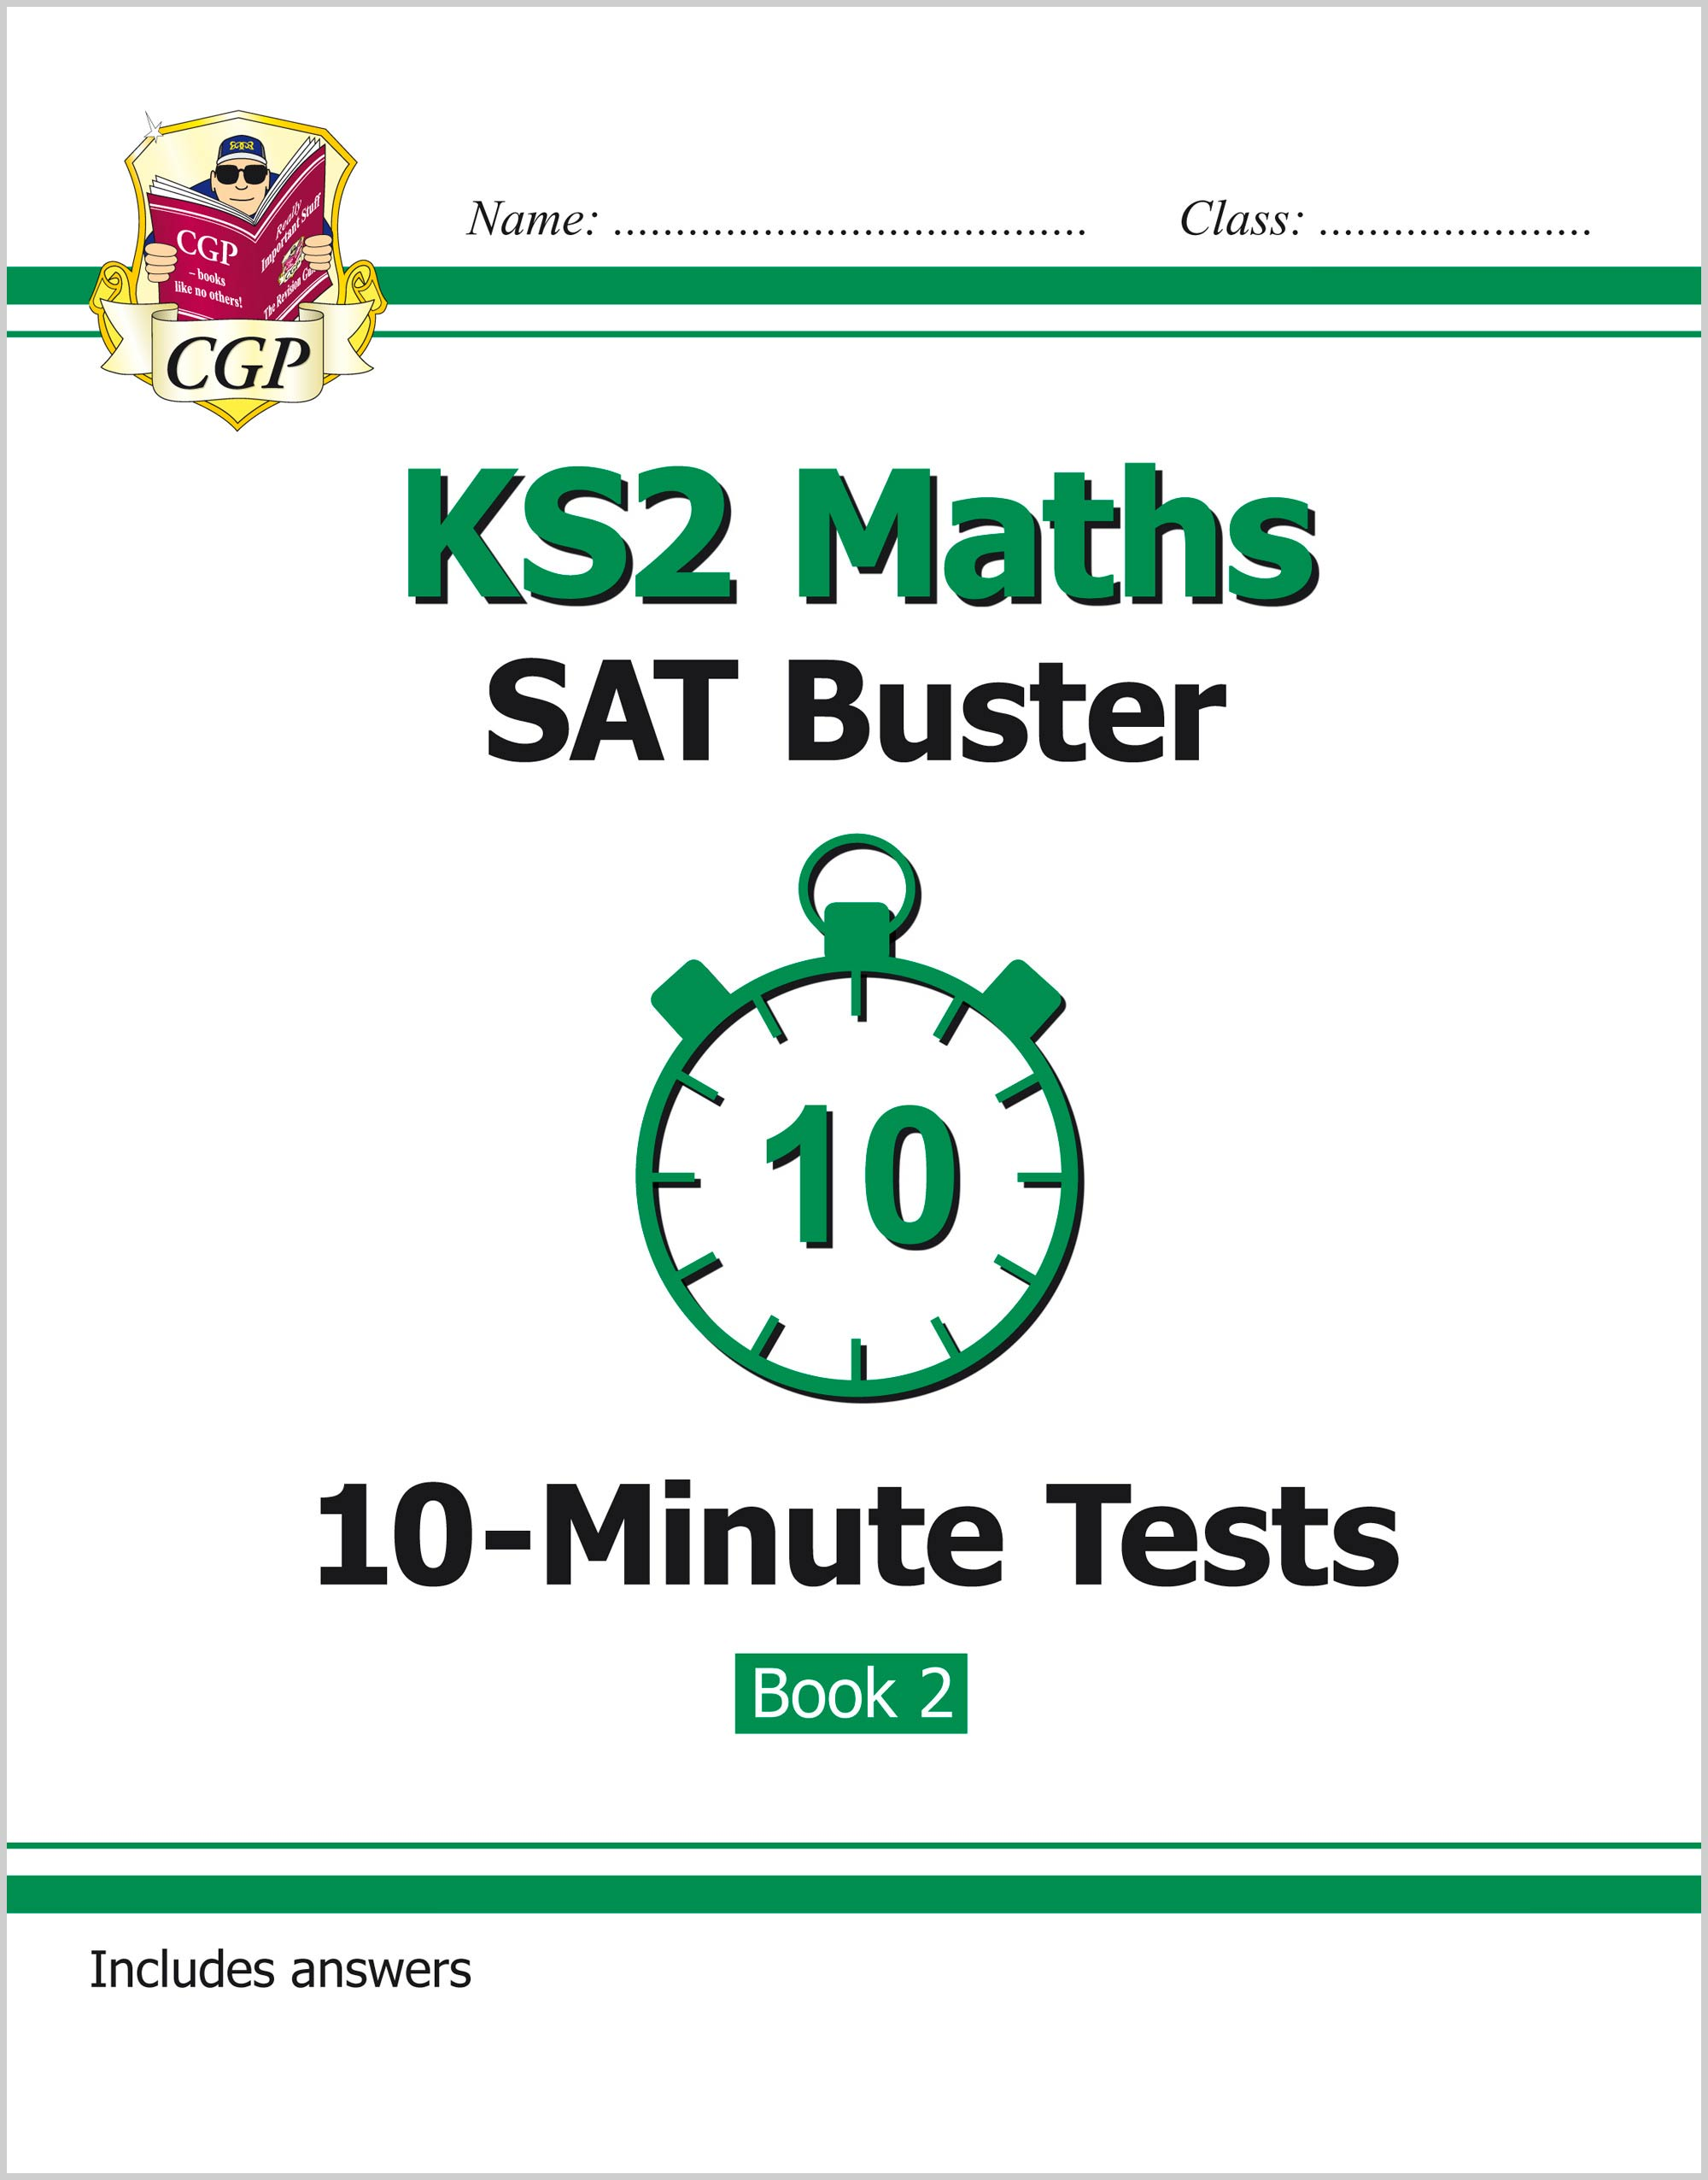 MXP221 - KS2 Maths SAT Buster 10-Minute Tests: Maths - Book 2 (for the 2019 tests)